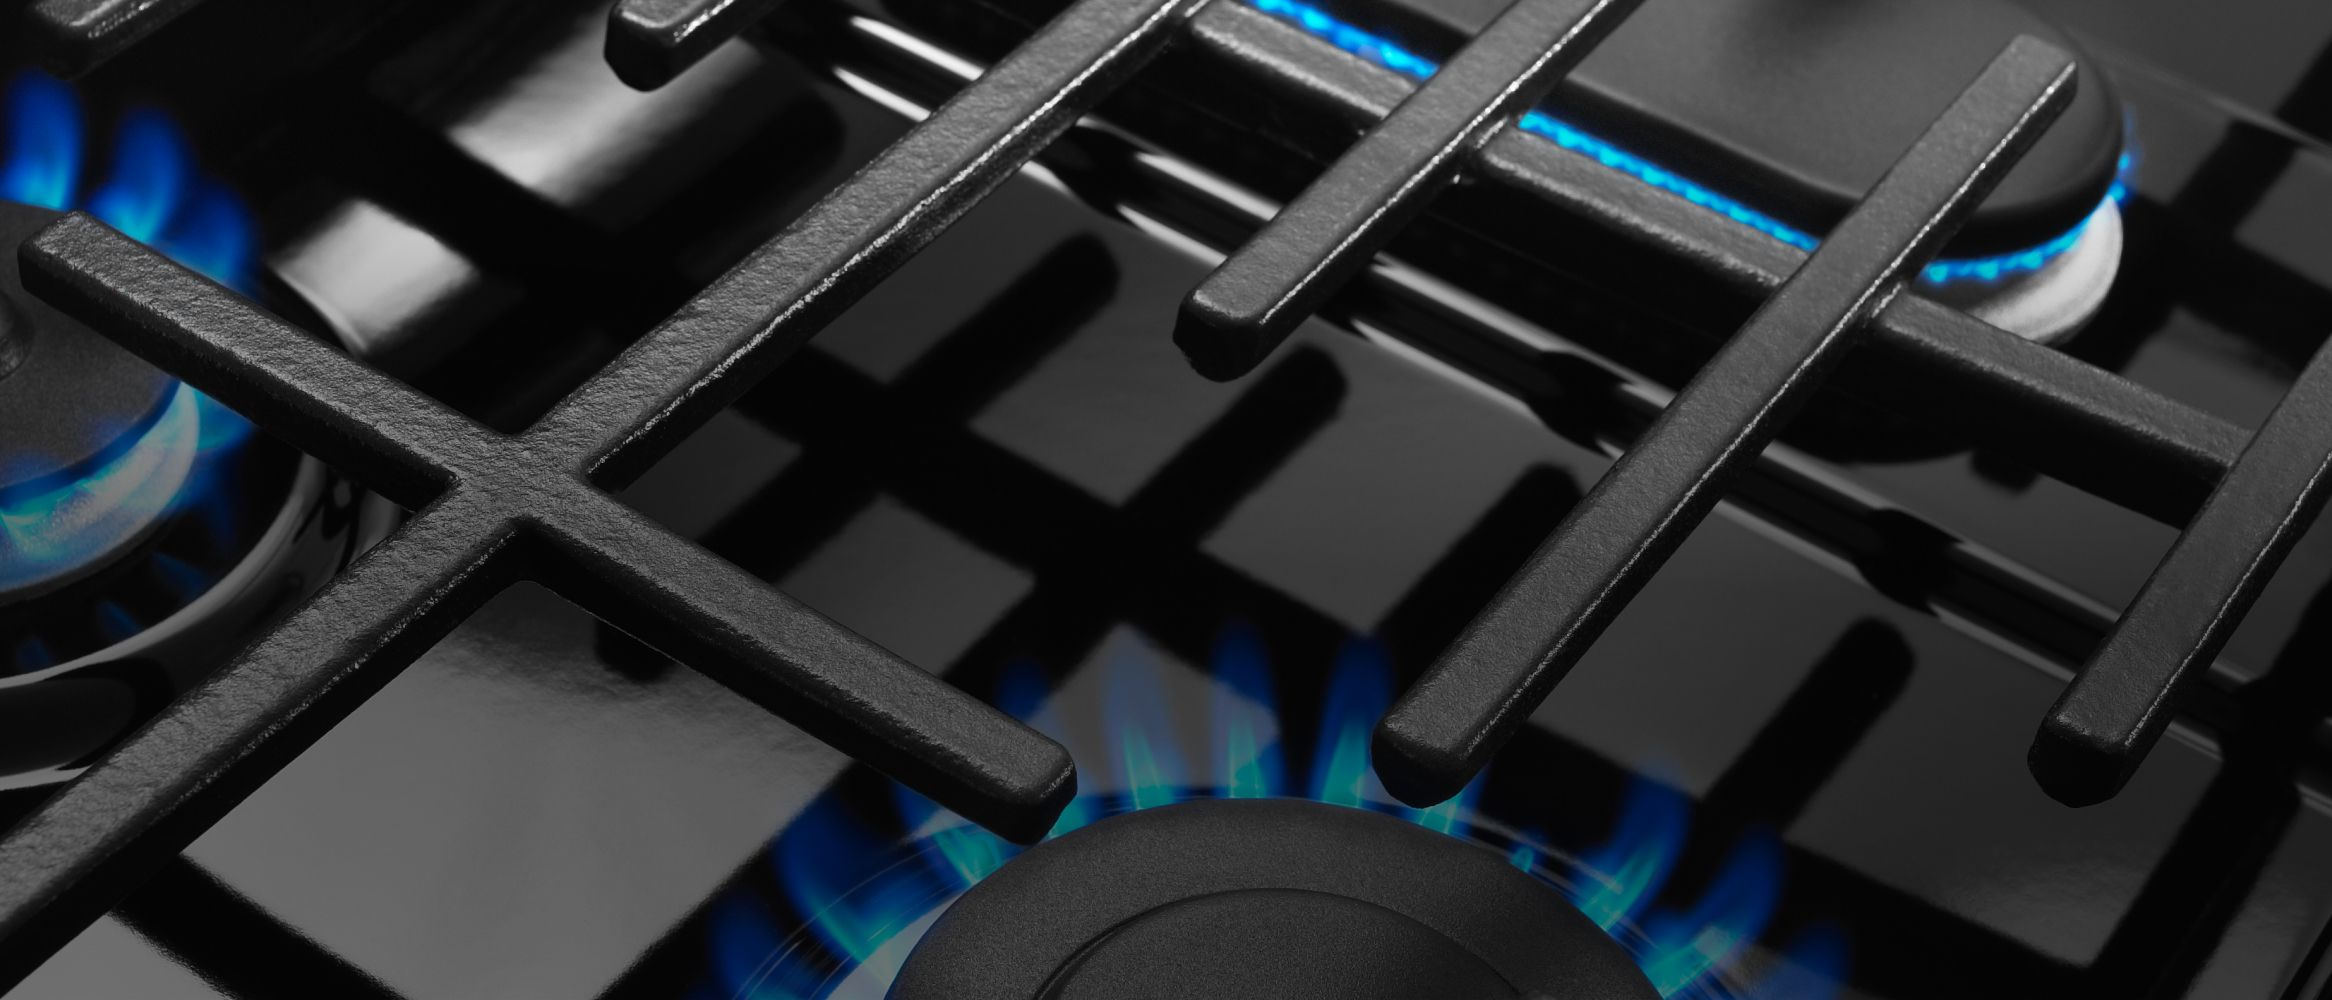 Lit burners on a Maytag® cooktop.